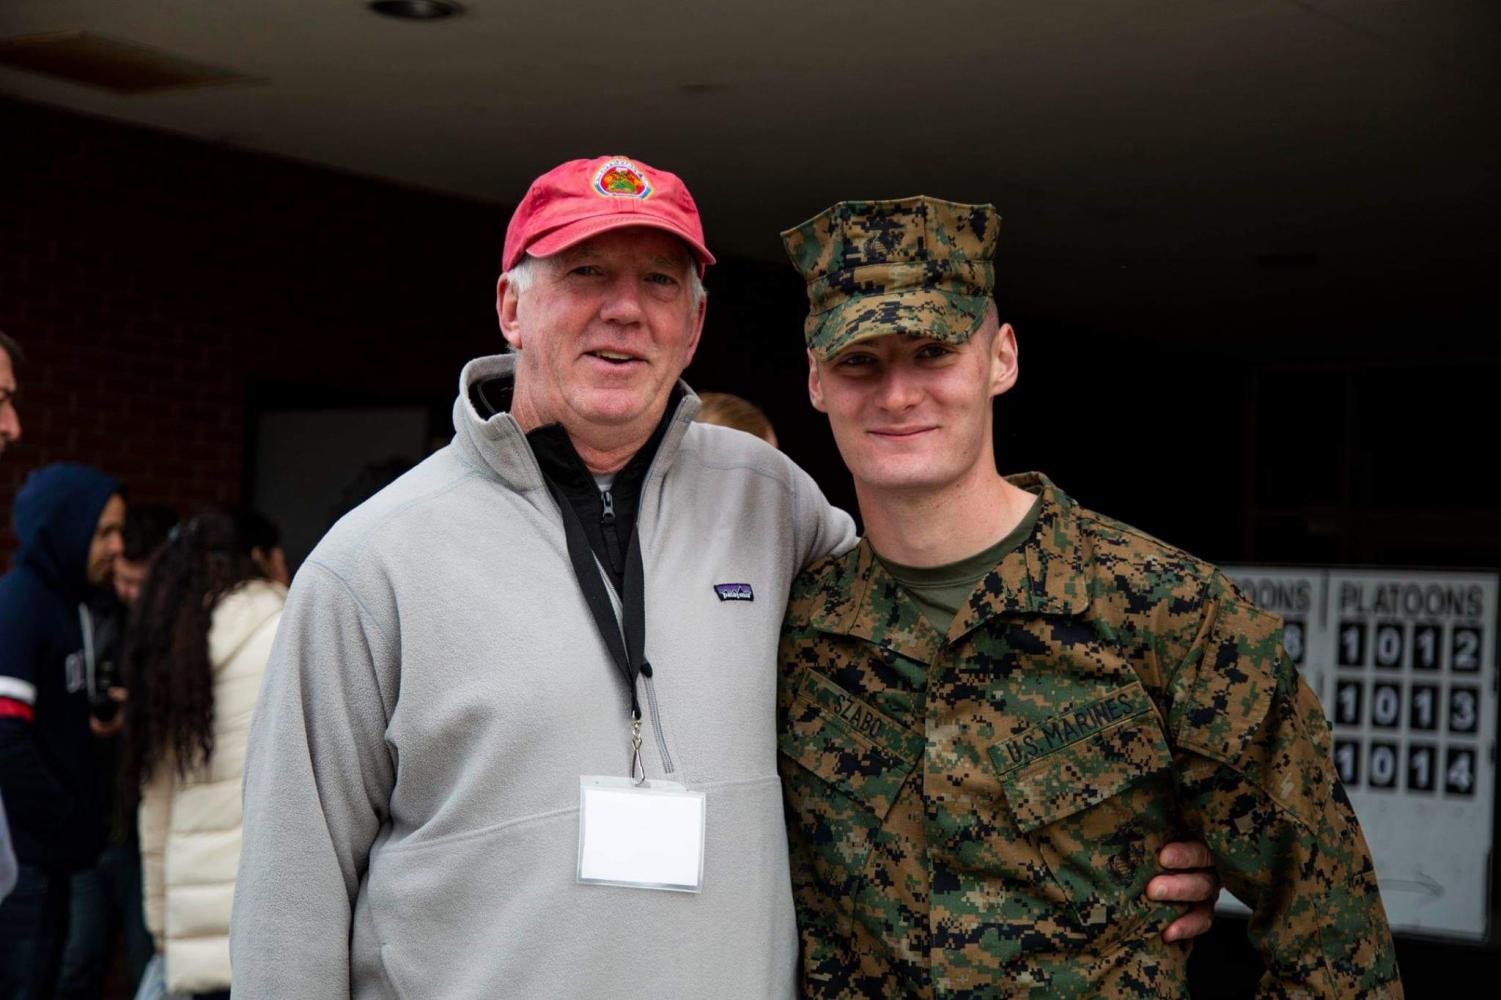 English teacher John Kelly connects with former student Bela Szabo at the Marine Corps boot camp graduation.